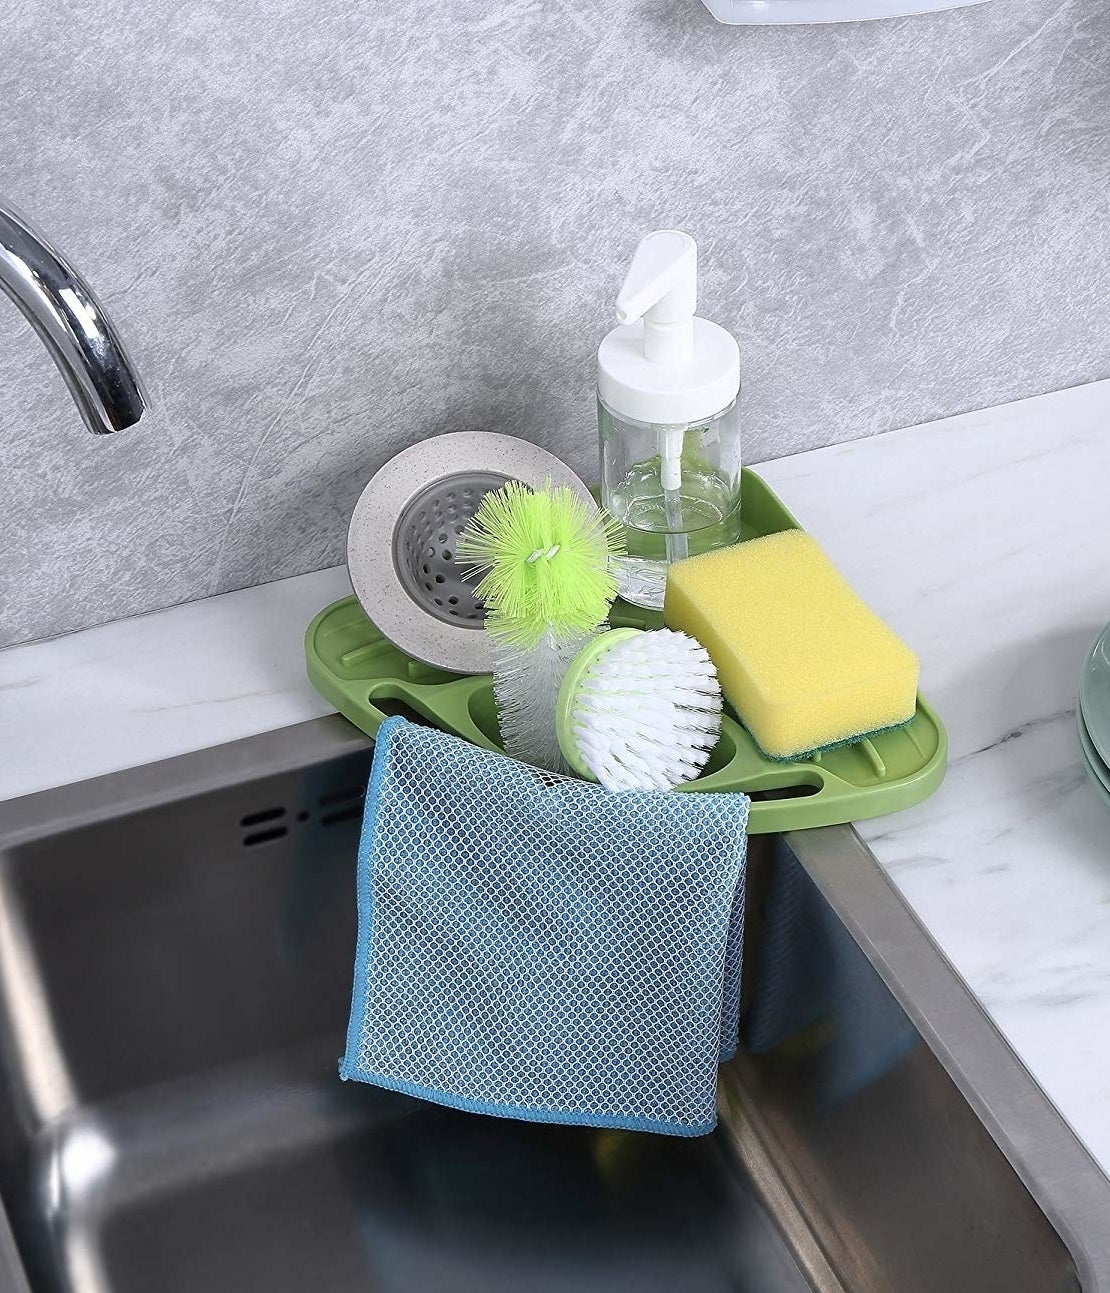 the tray, stacked with a soap pump, a sponge, two scrubber brushes, a catcher for the drain, and a scrub cloth, on the corner of a sink